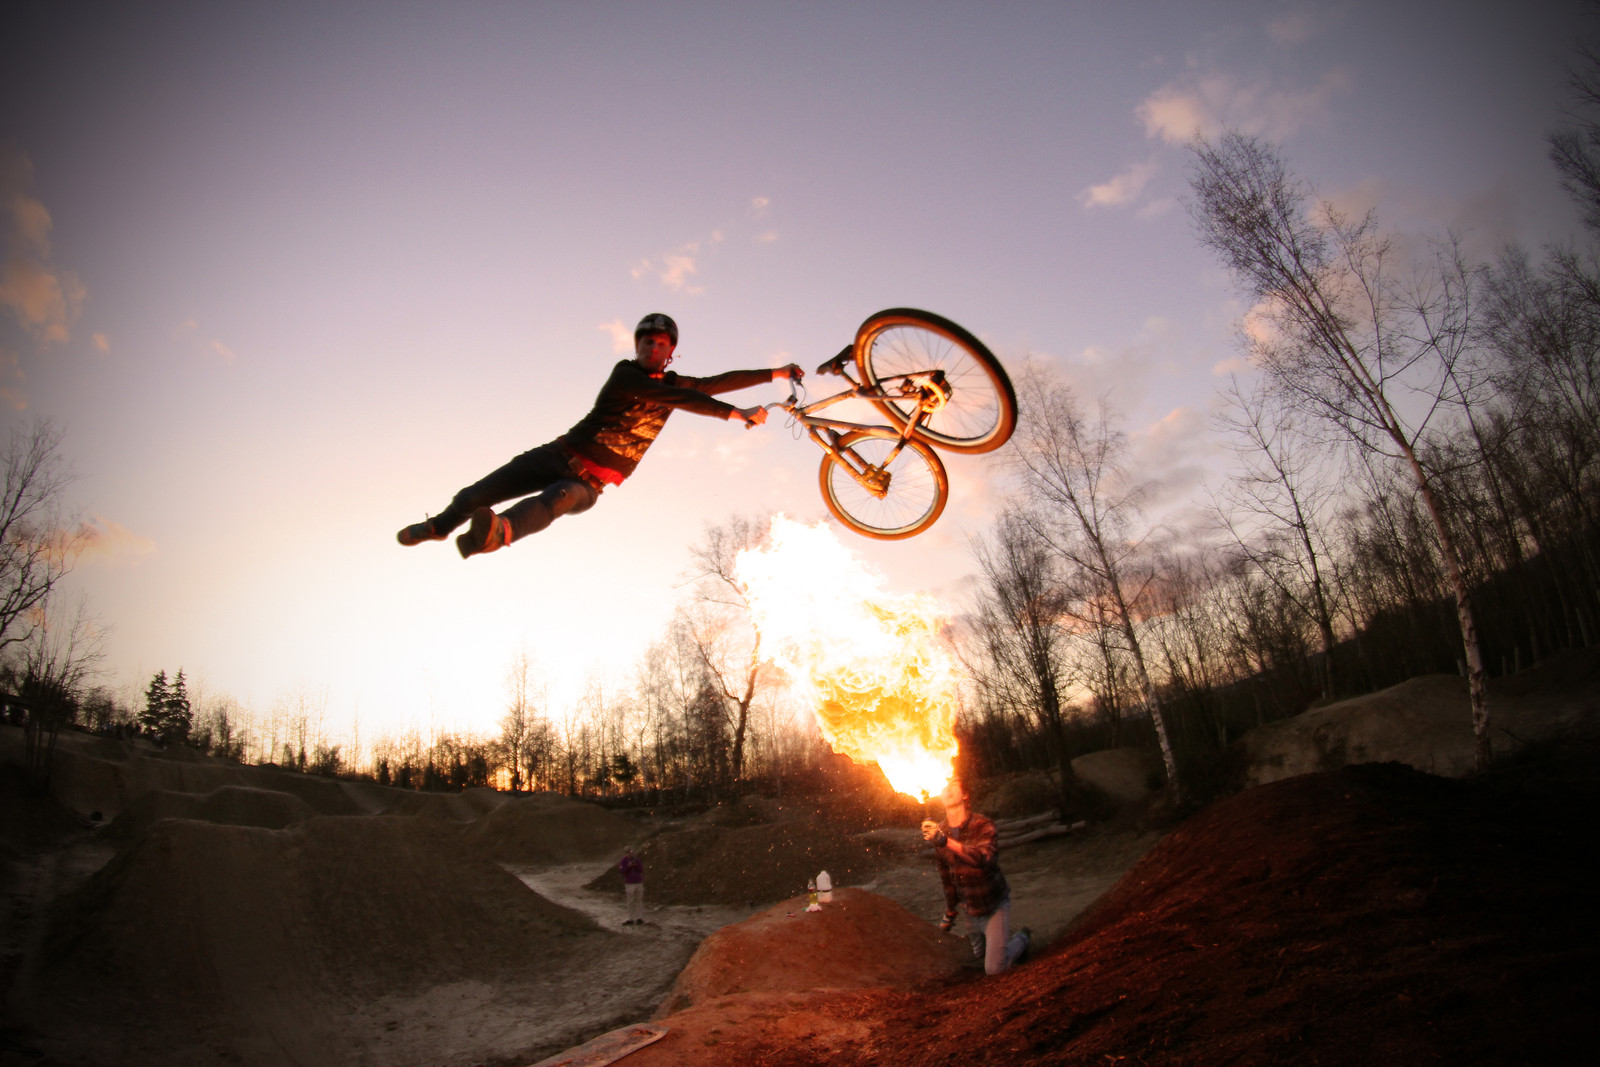 Fire and superish whip! - jamieledson - Mountain Biking Pictures - Vital MTB